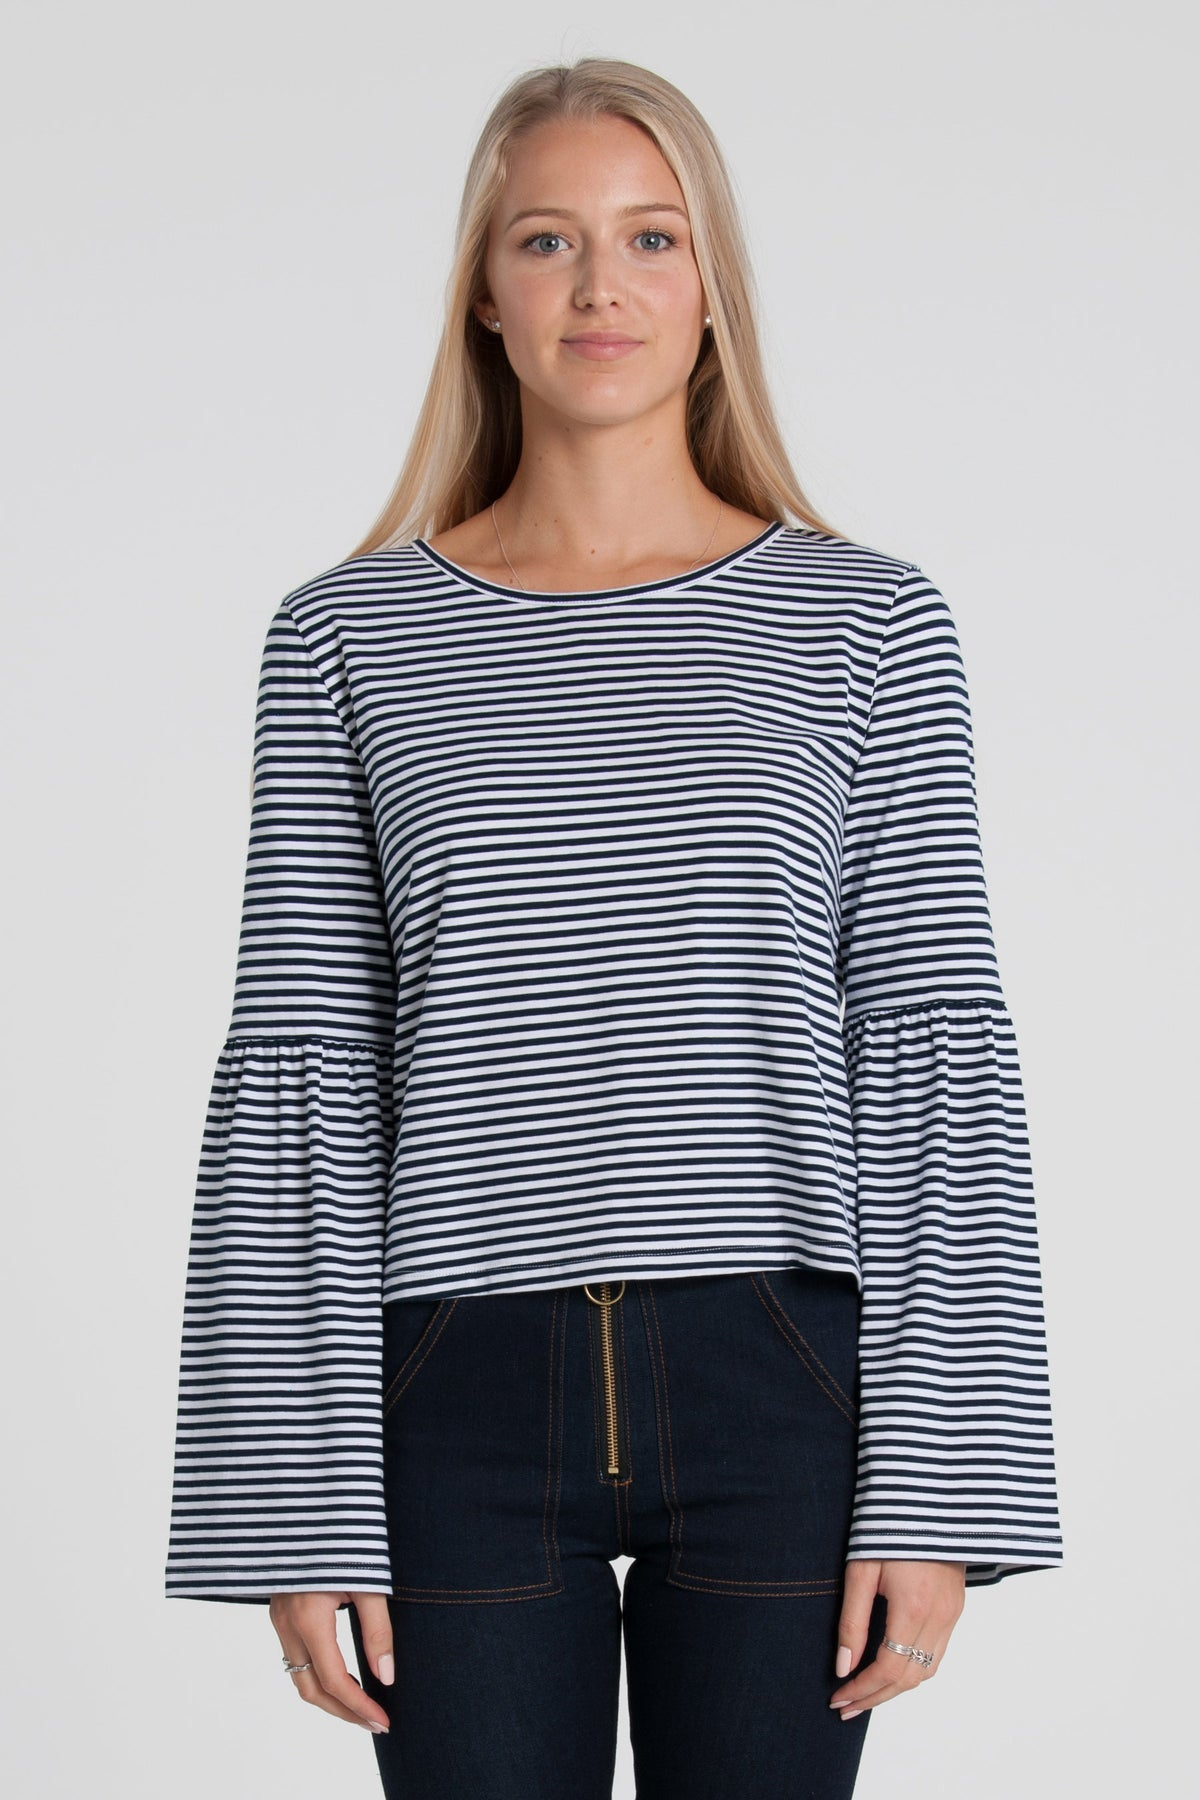 Ziggy Top - Navy/White Stripe